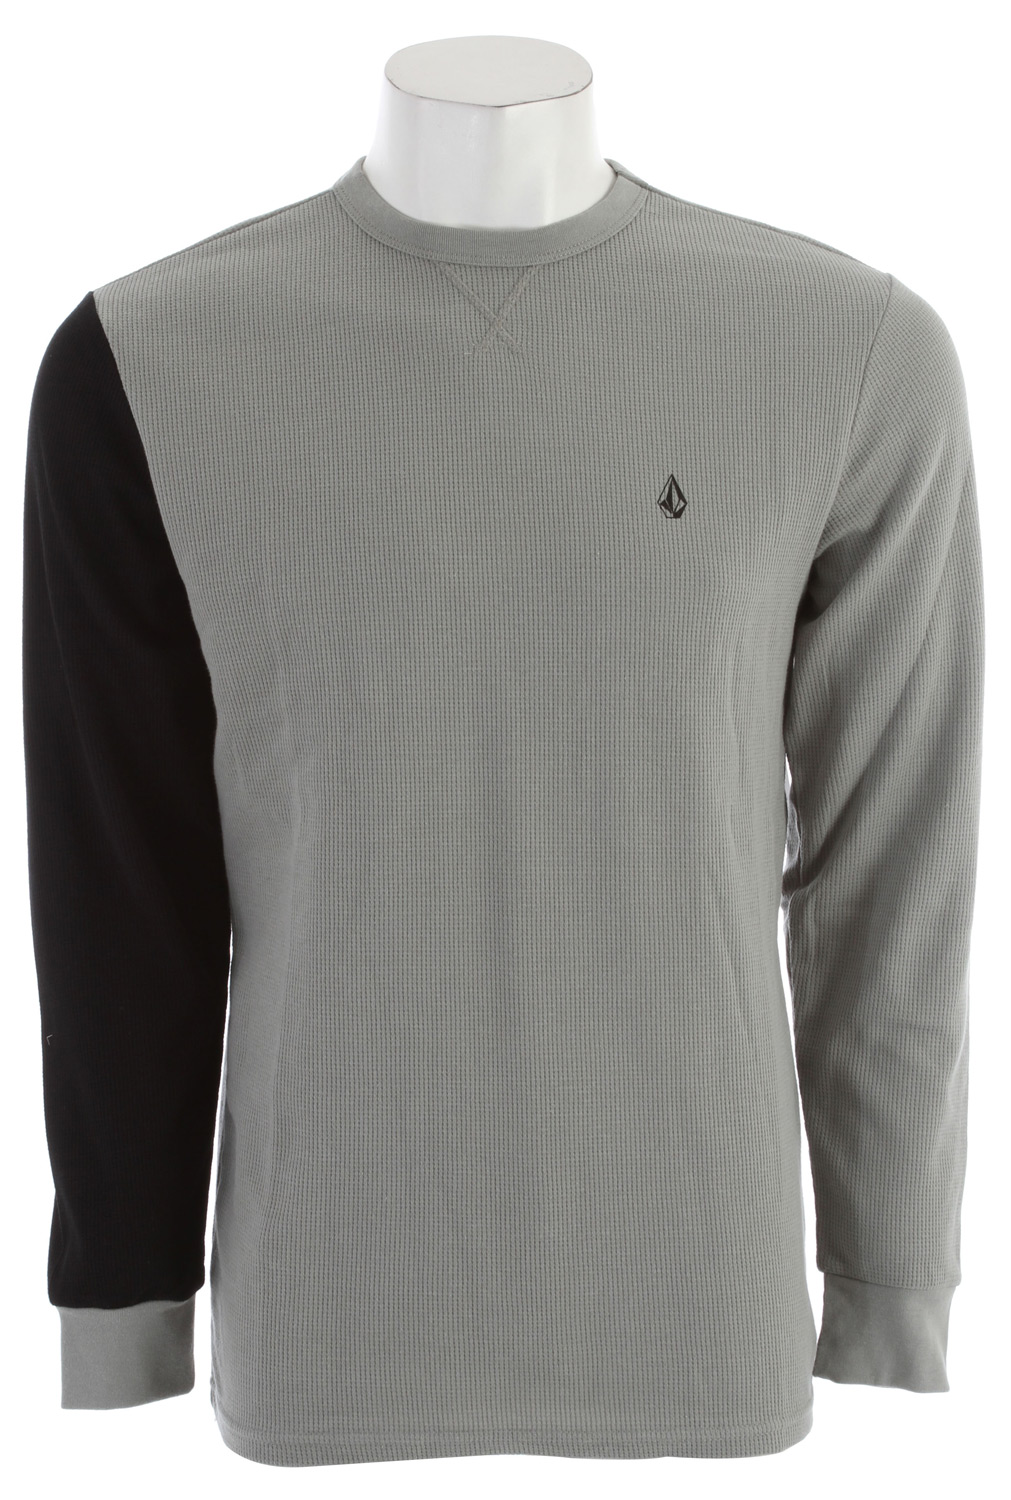 Surf Key Features of the Volcom Block L/S Thermal: Basic screenprint, Basic fit 60% cotton/40% polyester 230gm Thermal - $22.95